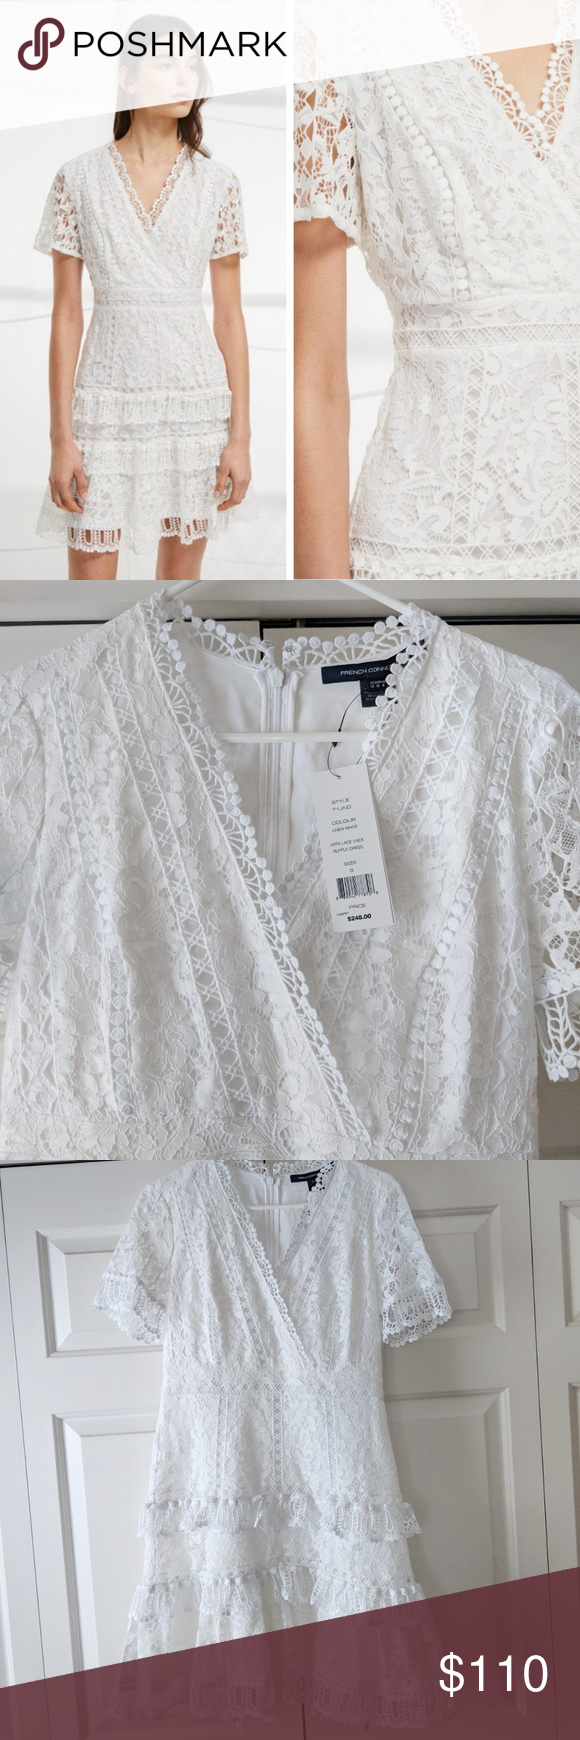 886f71d3a23 Arta Lace Ruffle Dress - French Connection Beautiful dress, just turned out  to be a